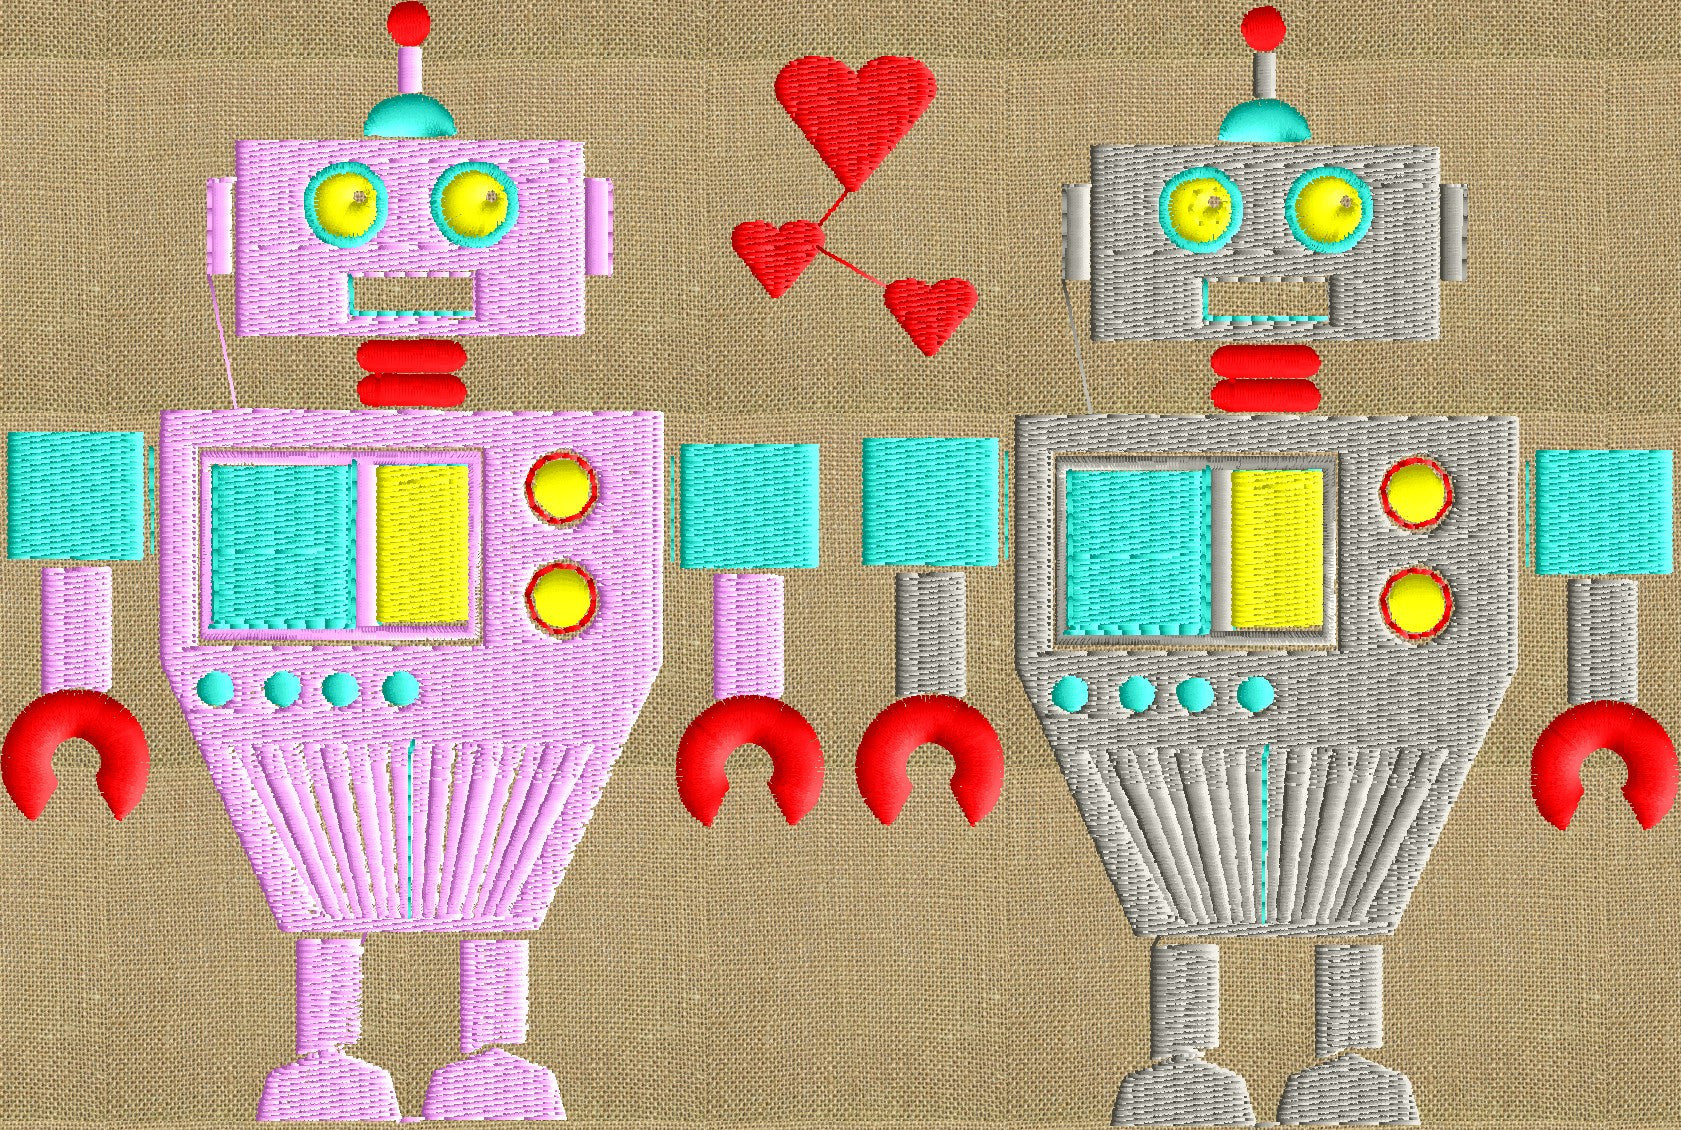 Robot Love - Valentines Day themed - EMBROIDERY DESIGN FILE- Instant download - Exp Jef Vp3 Pes Dst formats - 5x7 hoops and larger